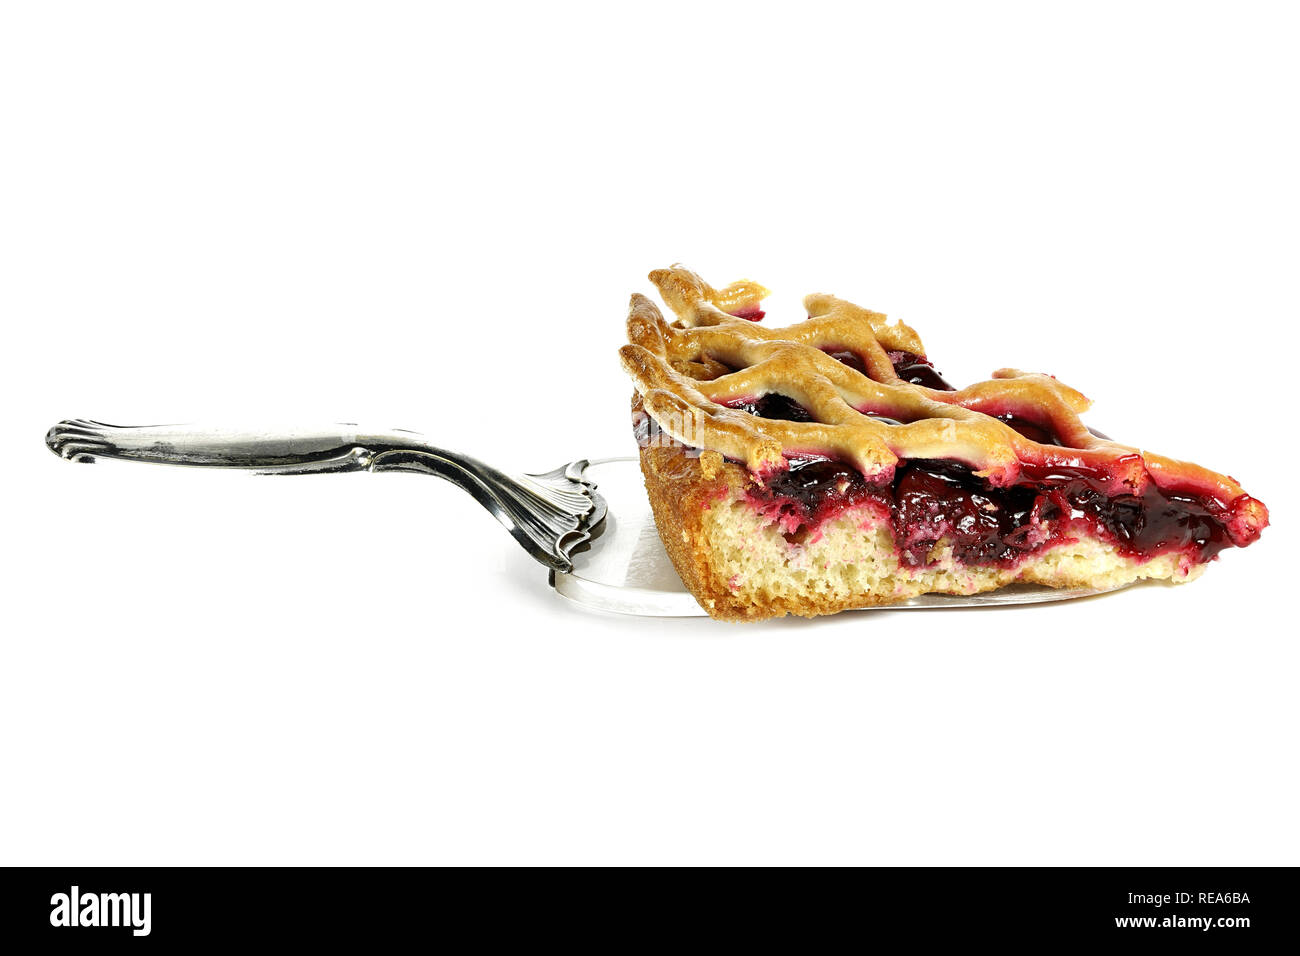 cake lifter with cherry cake wedge isolated on white background - Stock Image